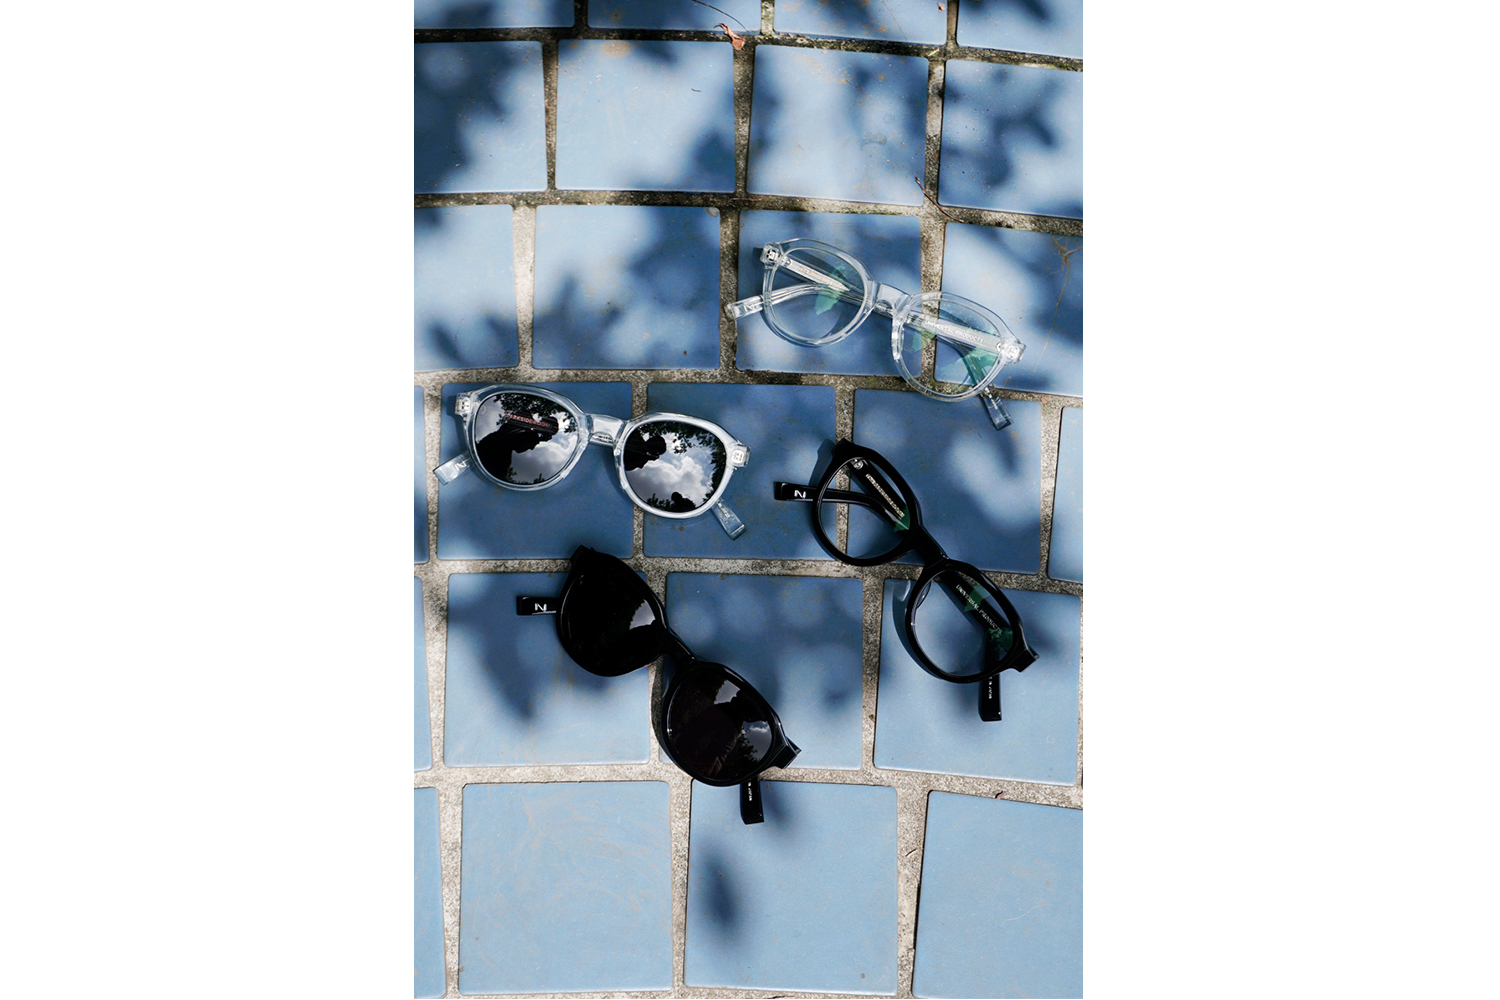 UNIVERSAL PRODUCTS. + Noritake x The PARKSIDE ROOM|tpr-006 - Black|The PARKSIDE ROOM